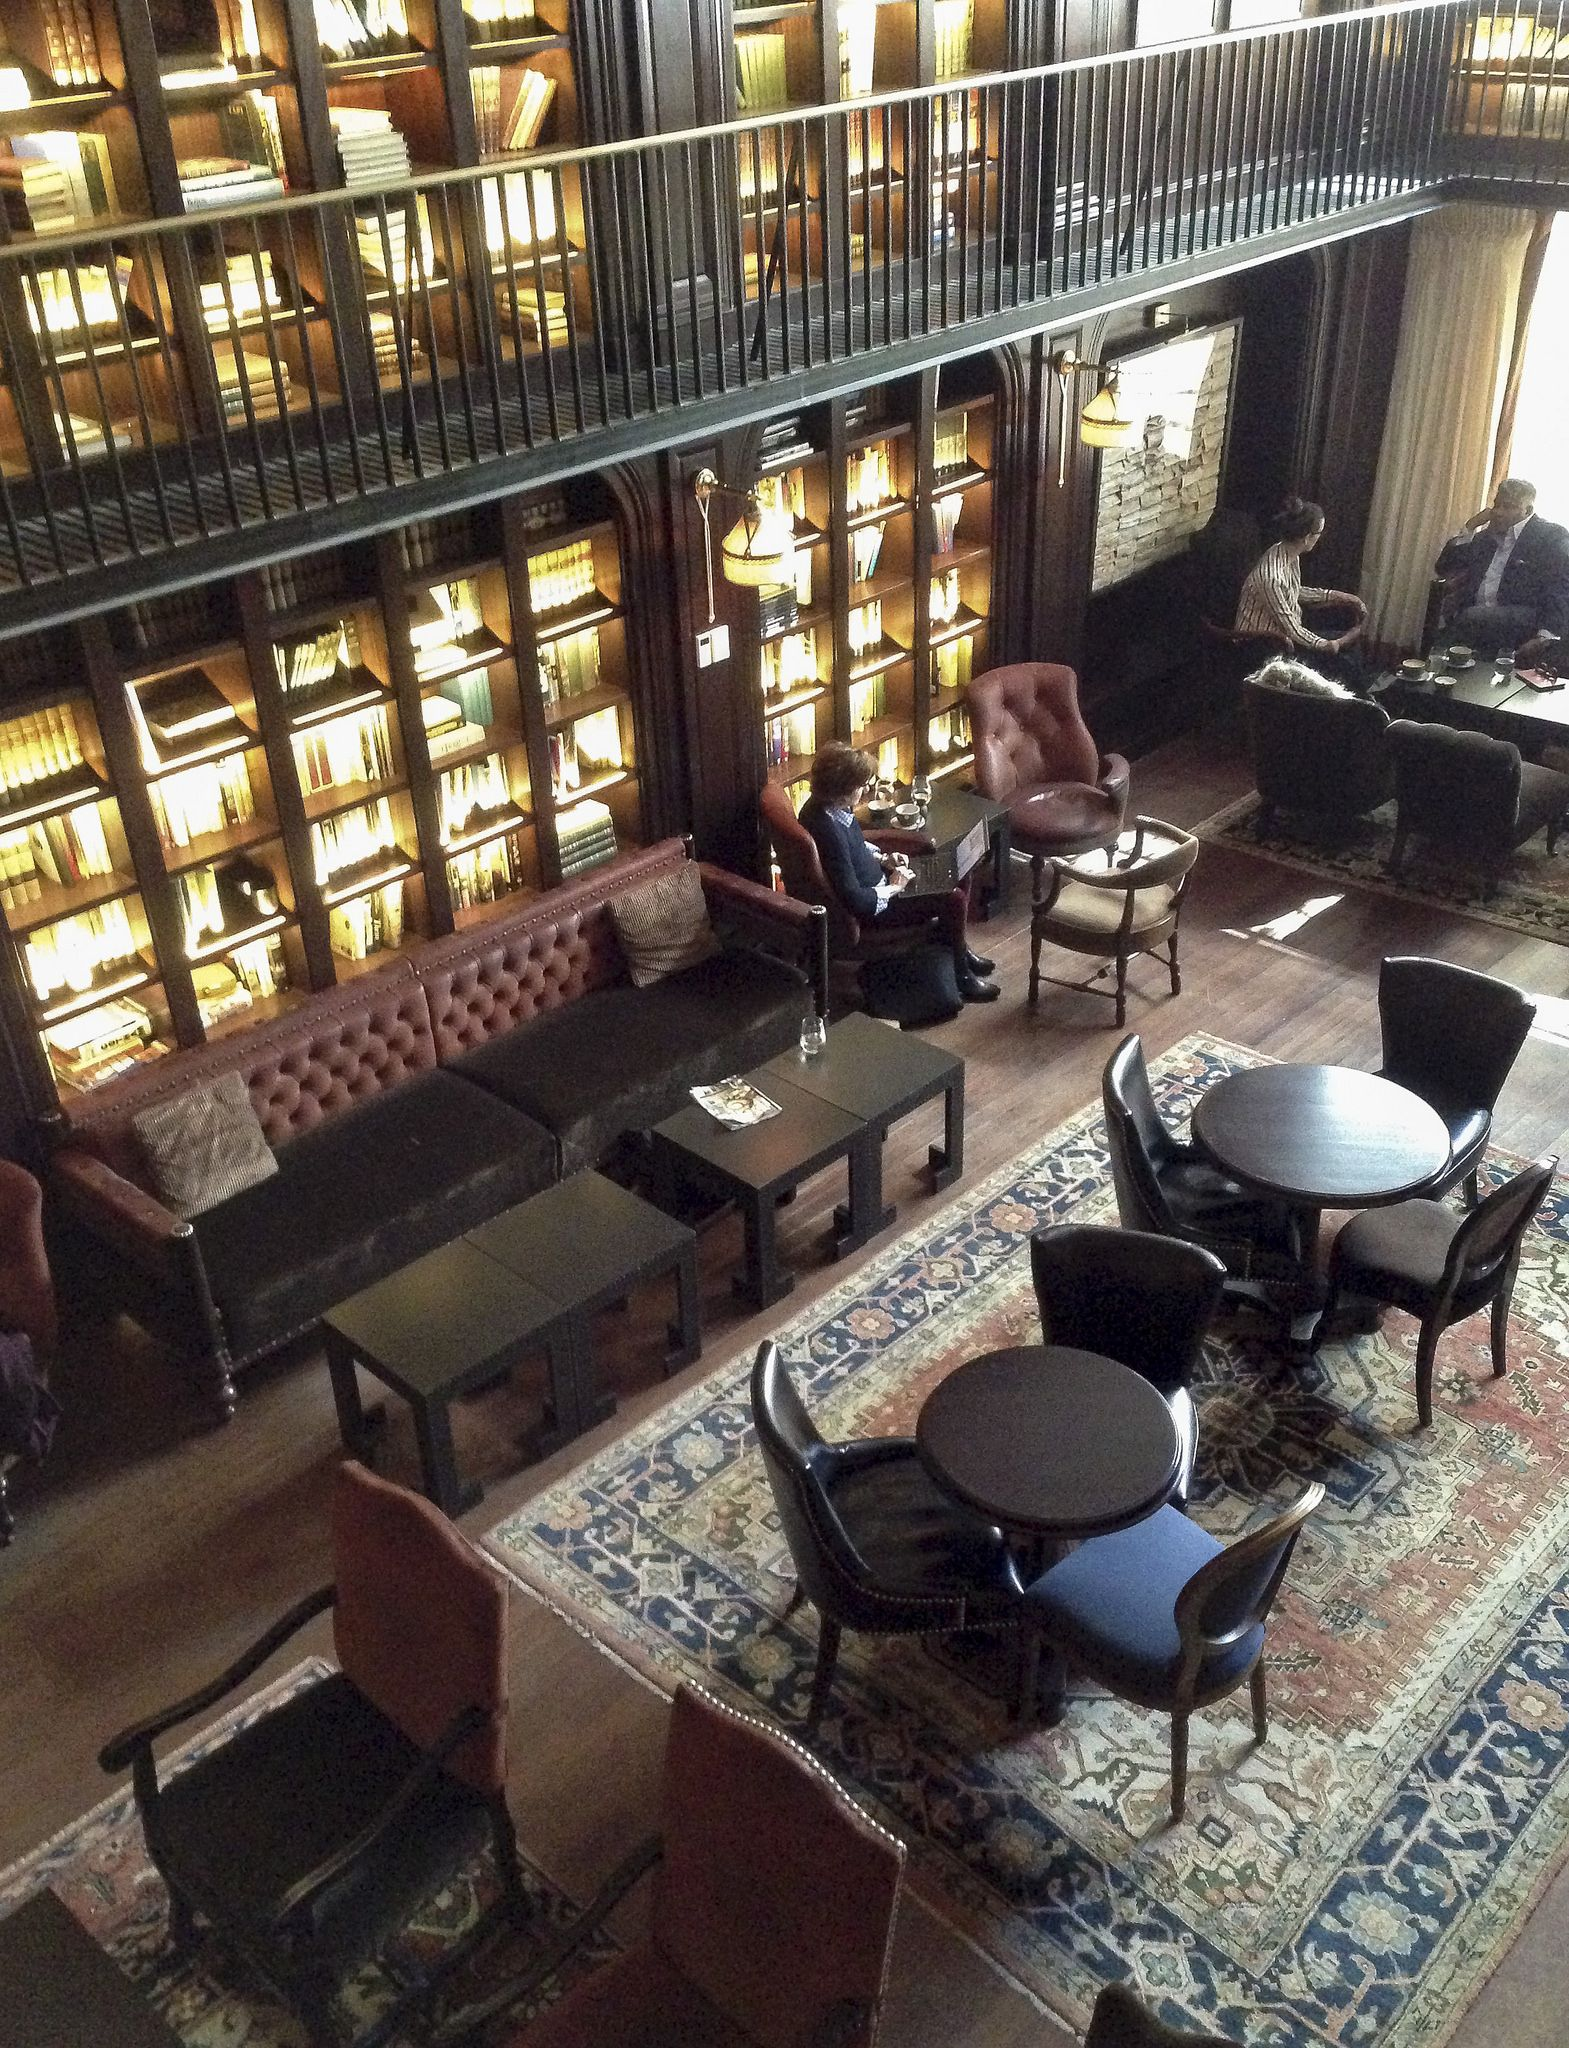 nomad hotel nyc in 2019 caf s and bookshops library ForNomad Hotel Decor